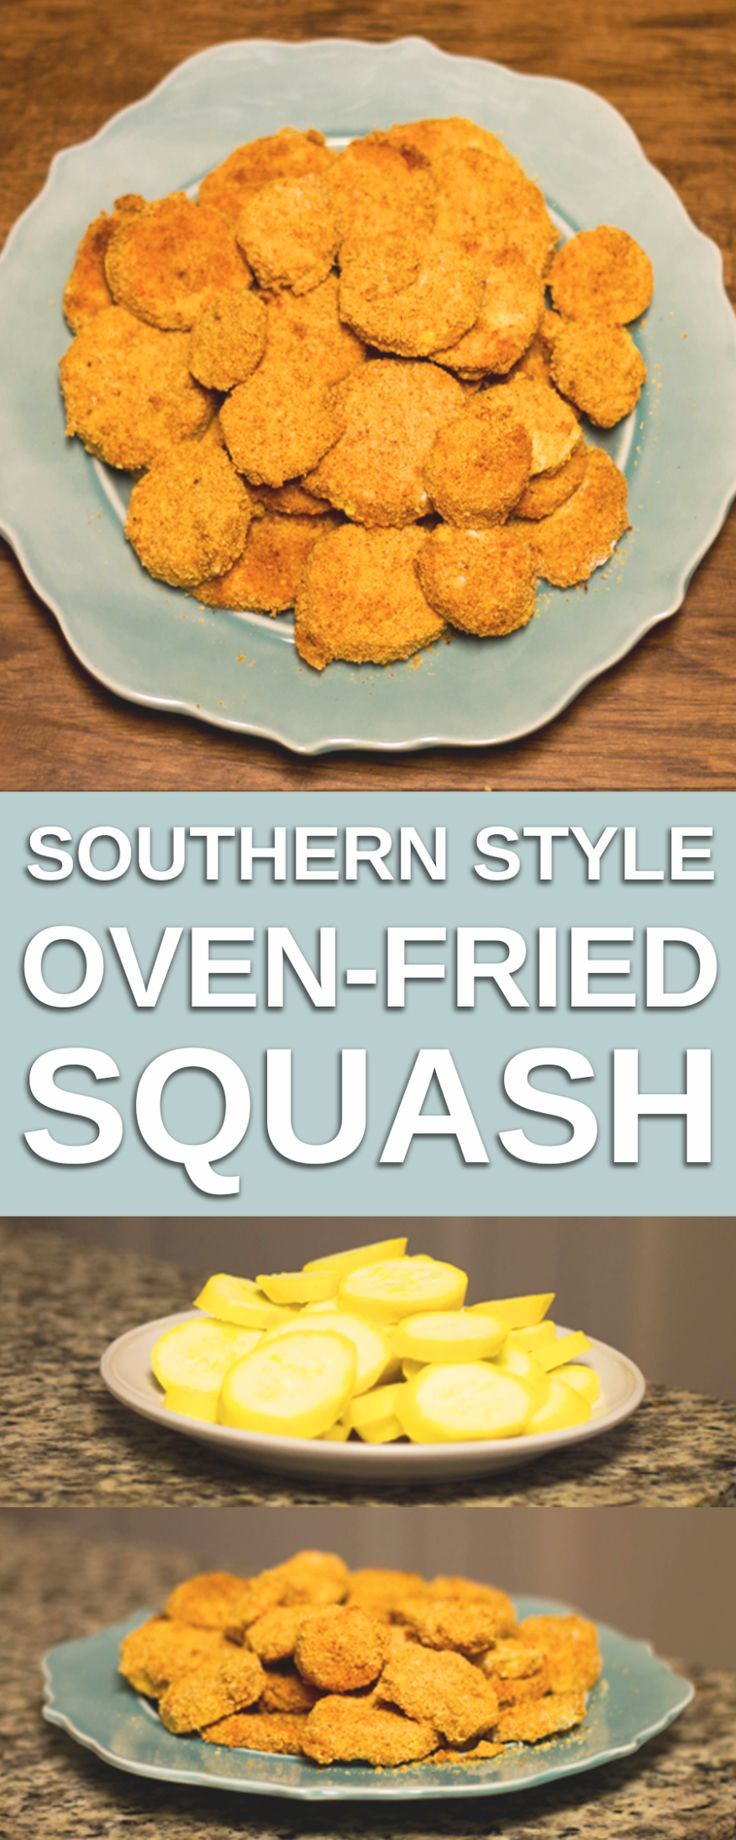 Recipe: Southern Style Oven-Fried Squash! - Style of Change